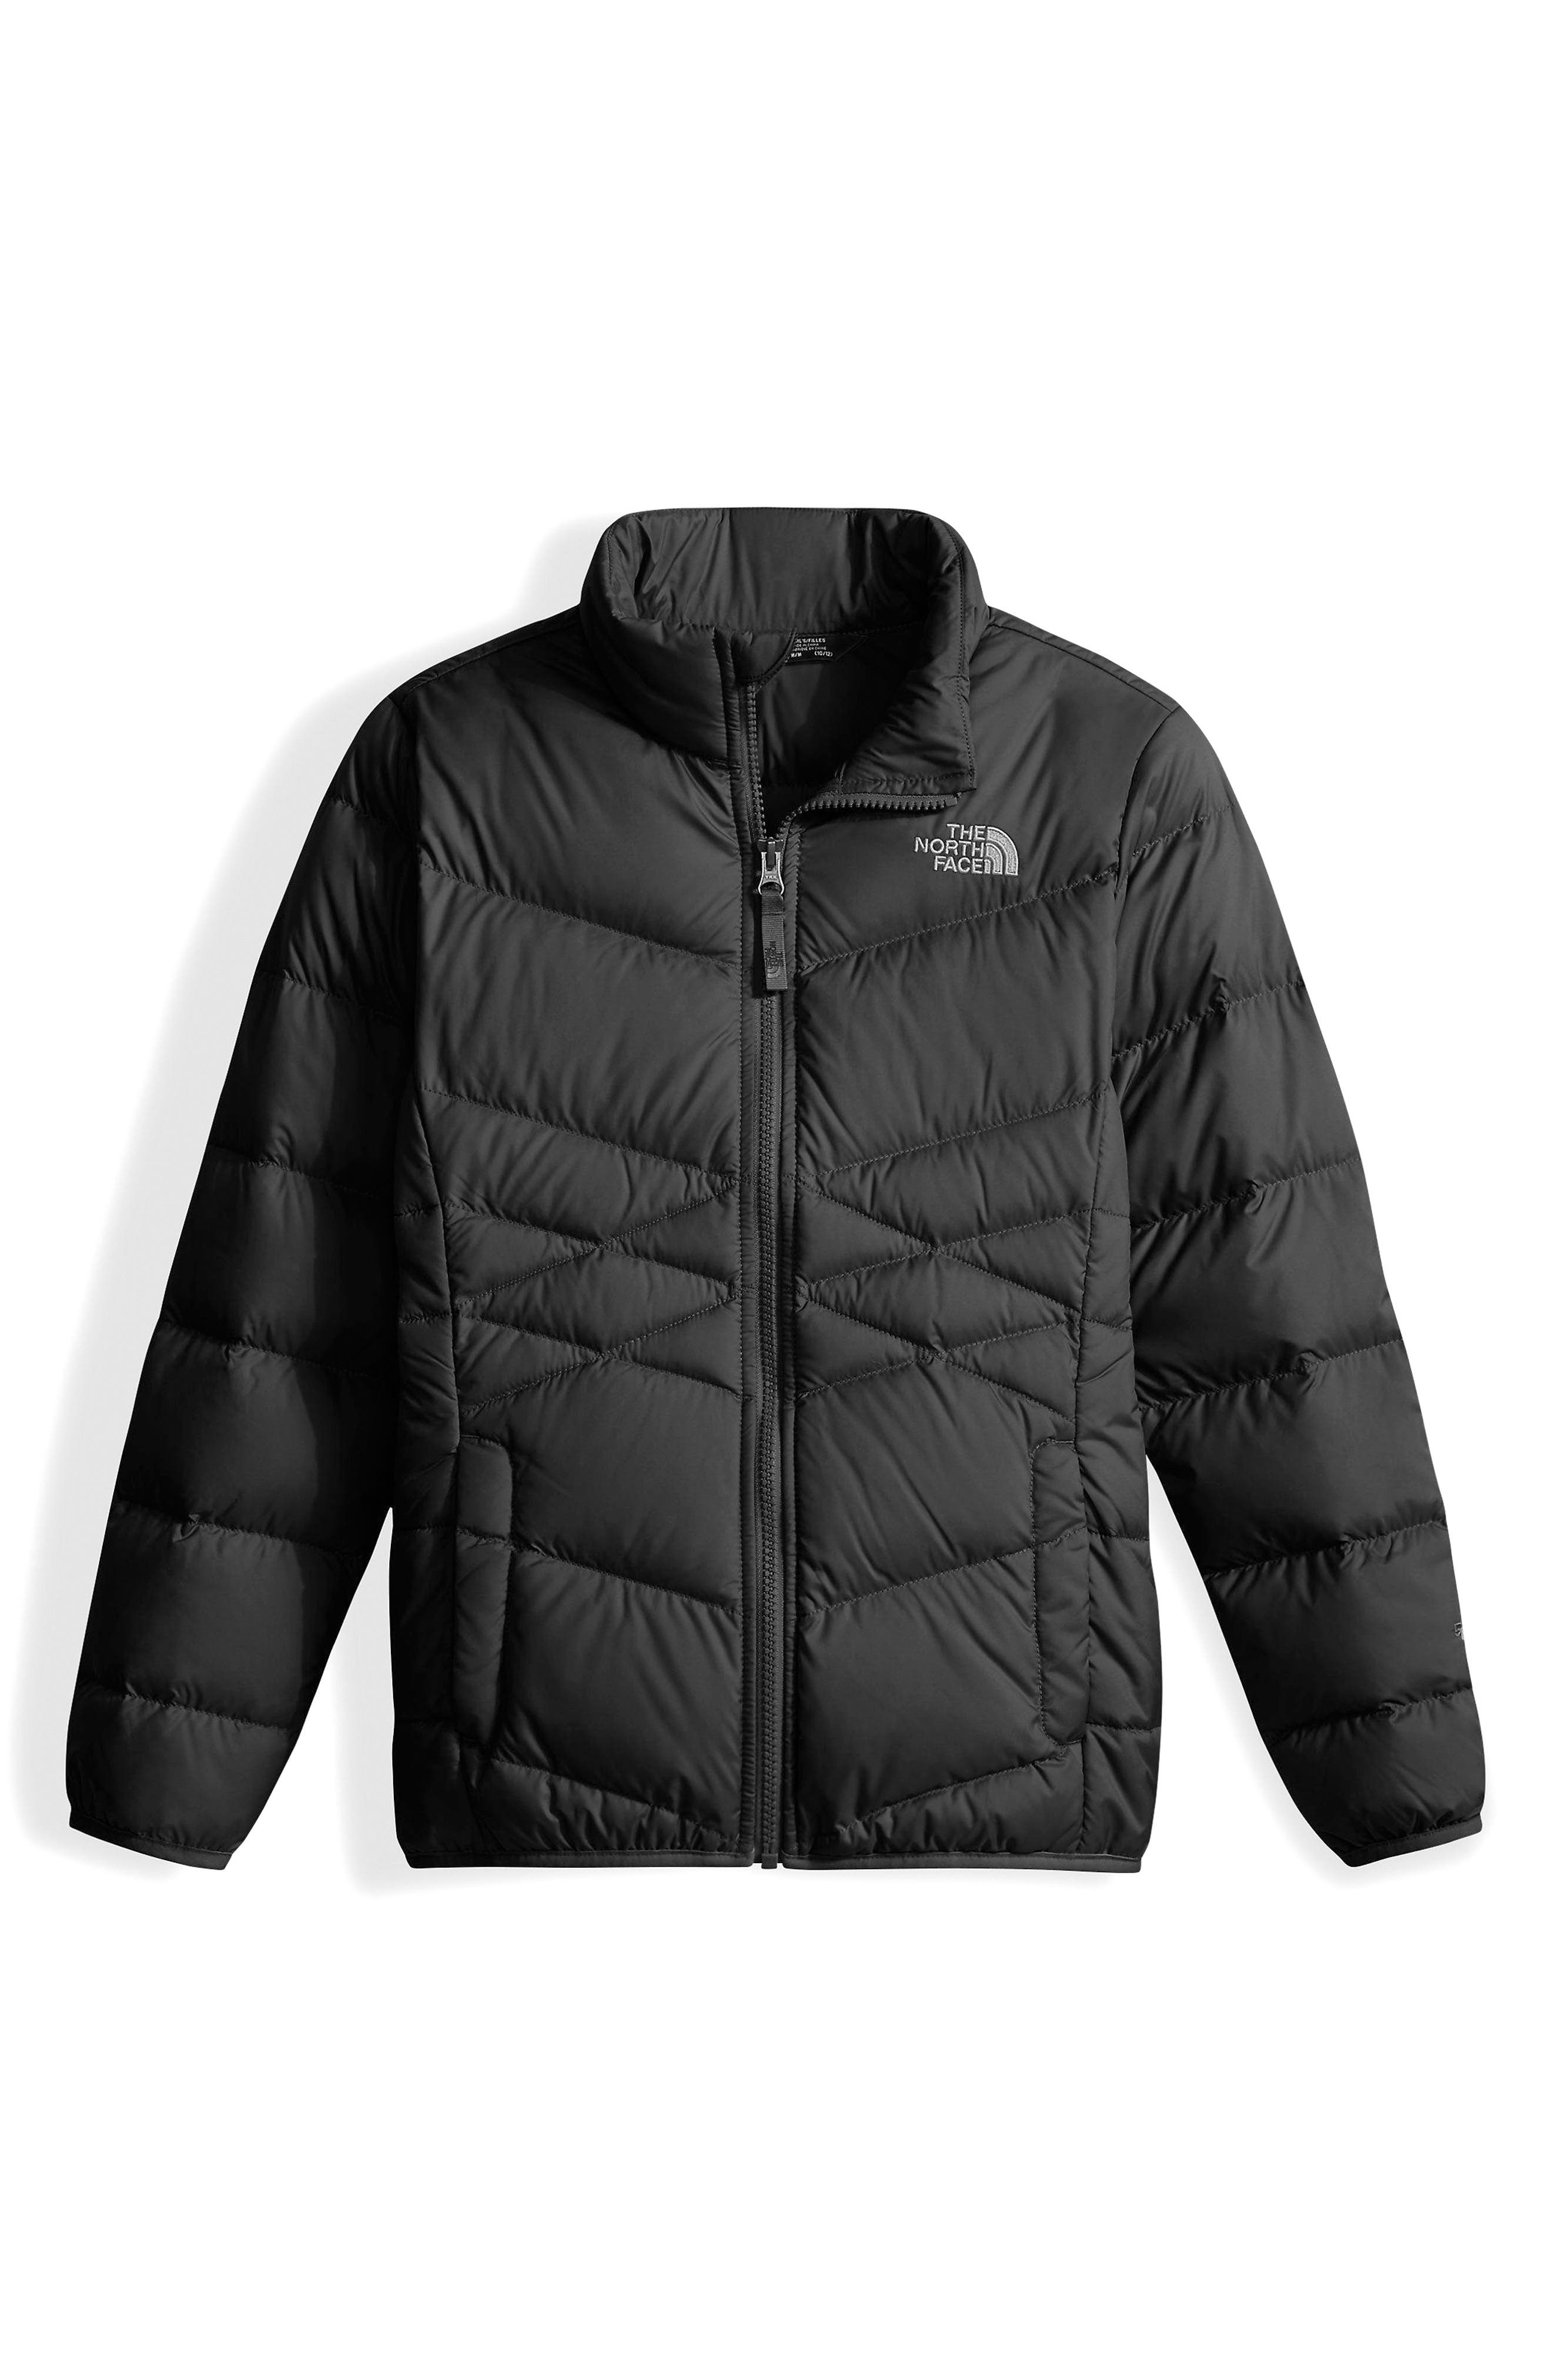 Andes Water Resistant Down Jacket,                             Main thumbnail 1, color,